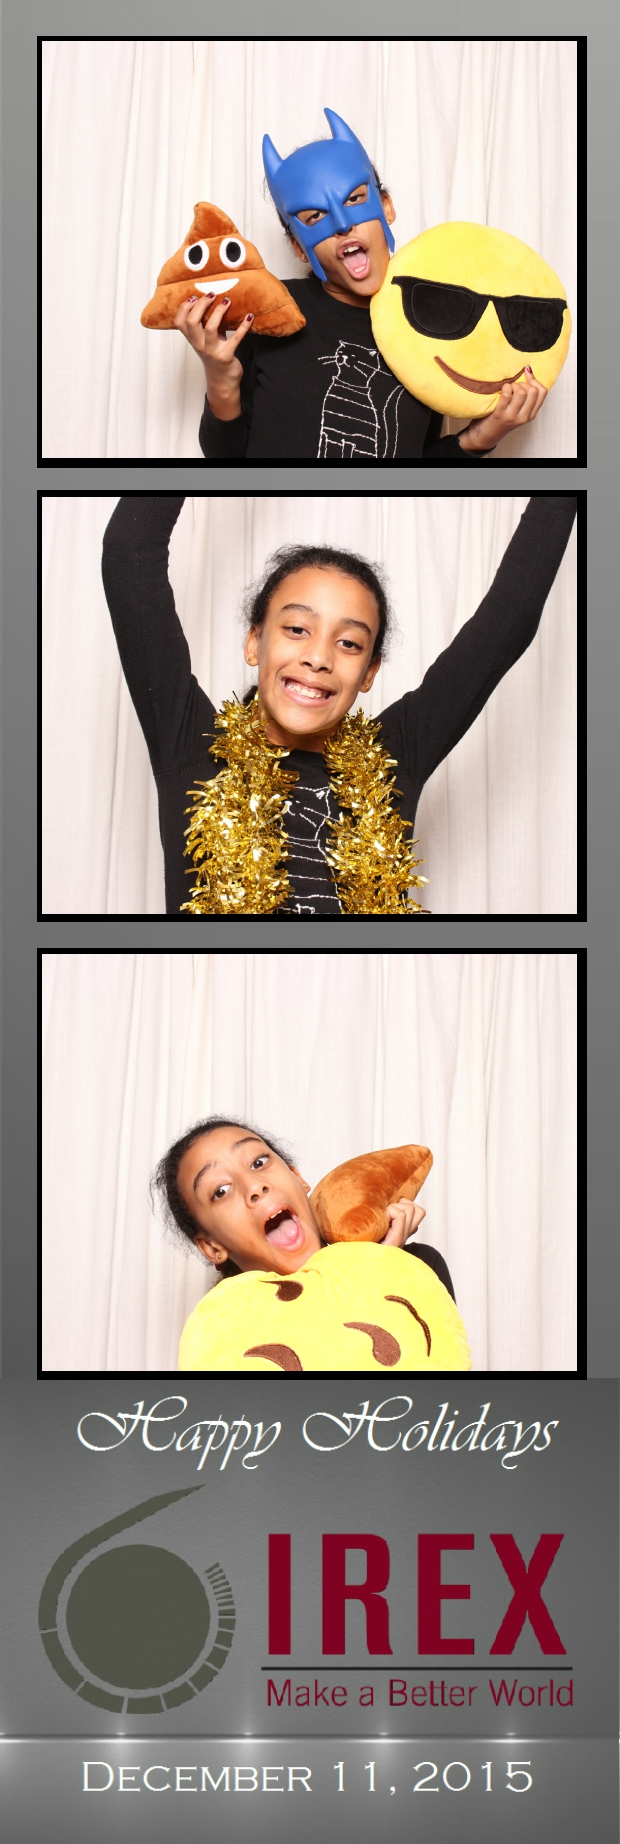 Guest House Events Photo Booth Strips IREX (52).jpg